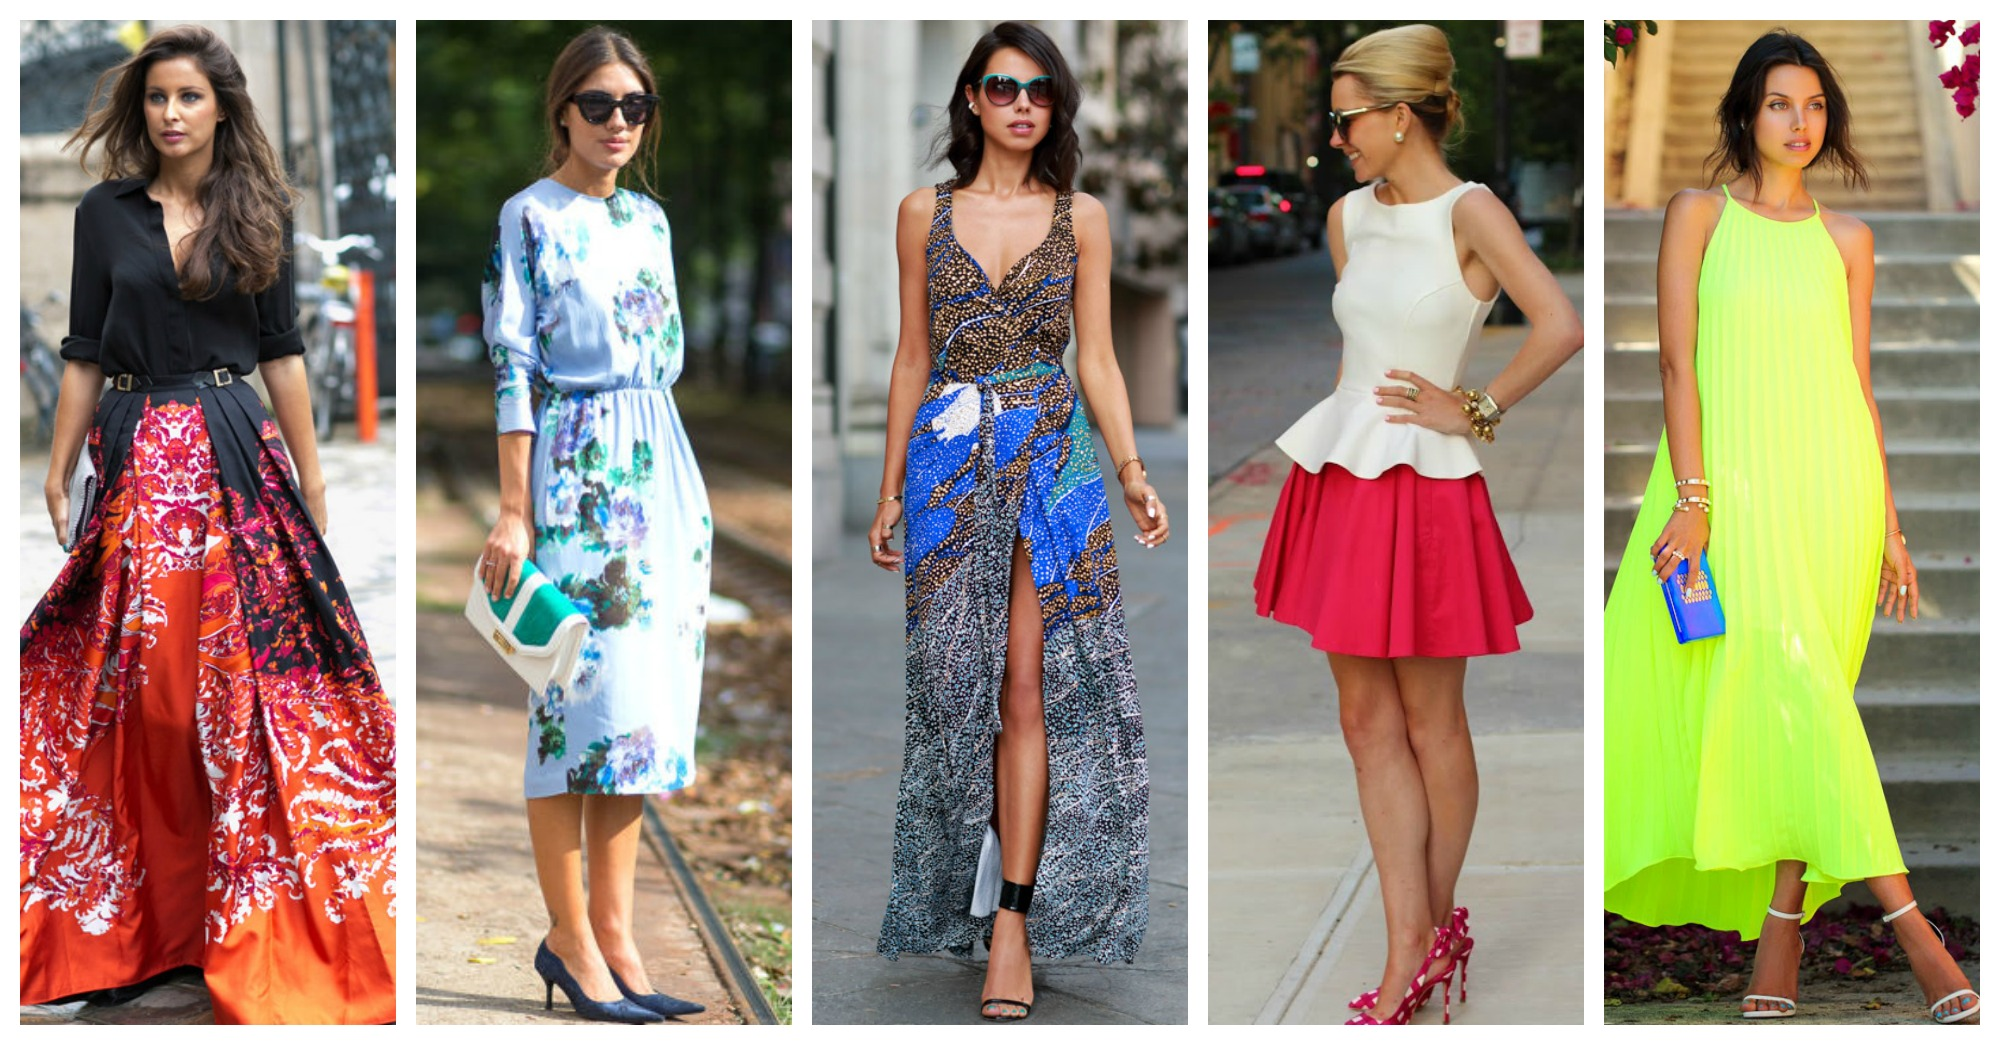 10 Outstanding Summer Outfits for Every Occasion